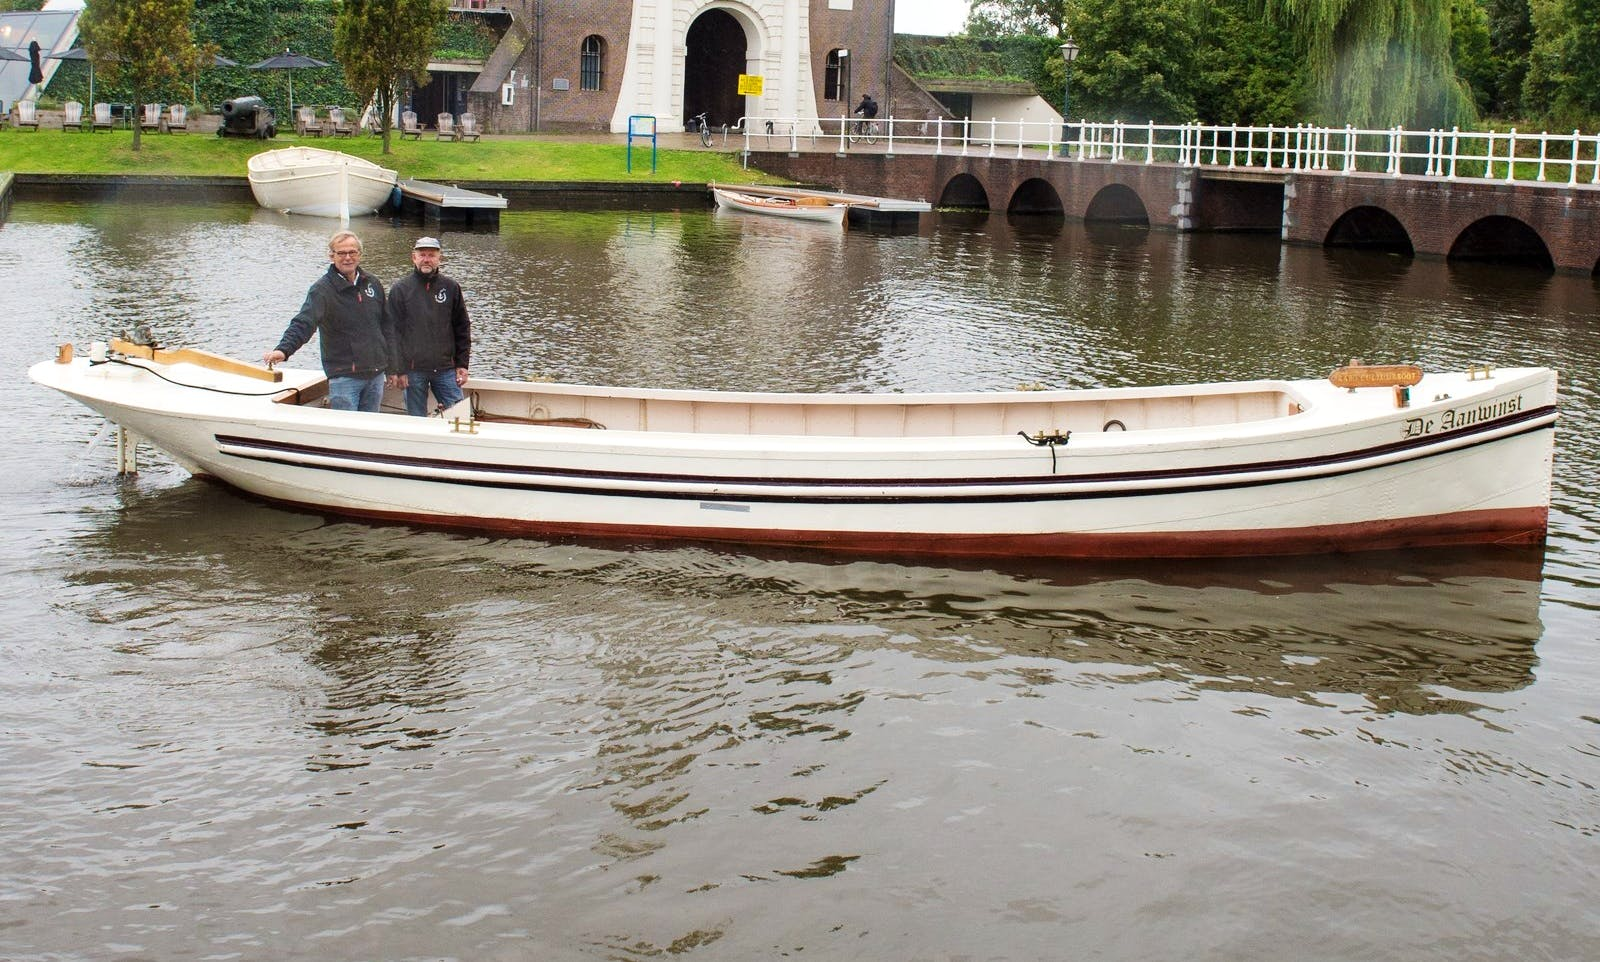 Aanwinst Canal Boat Charter in Leiden, South Holland